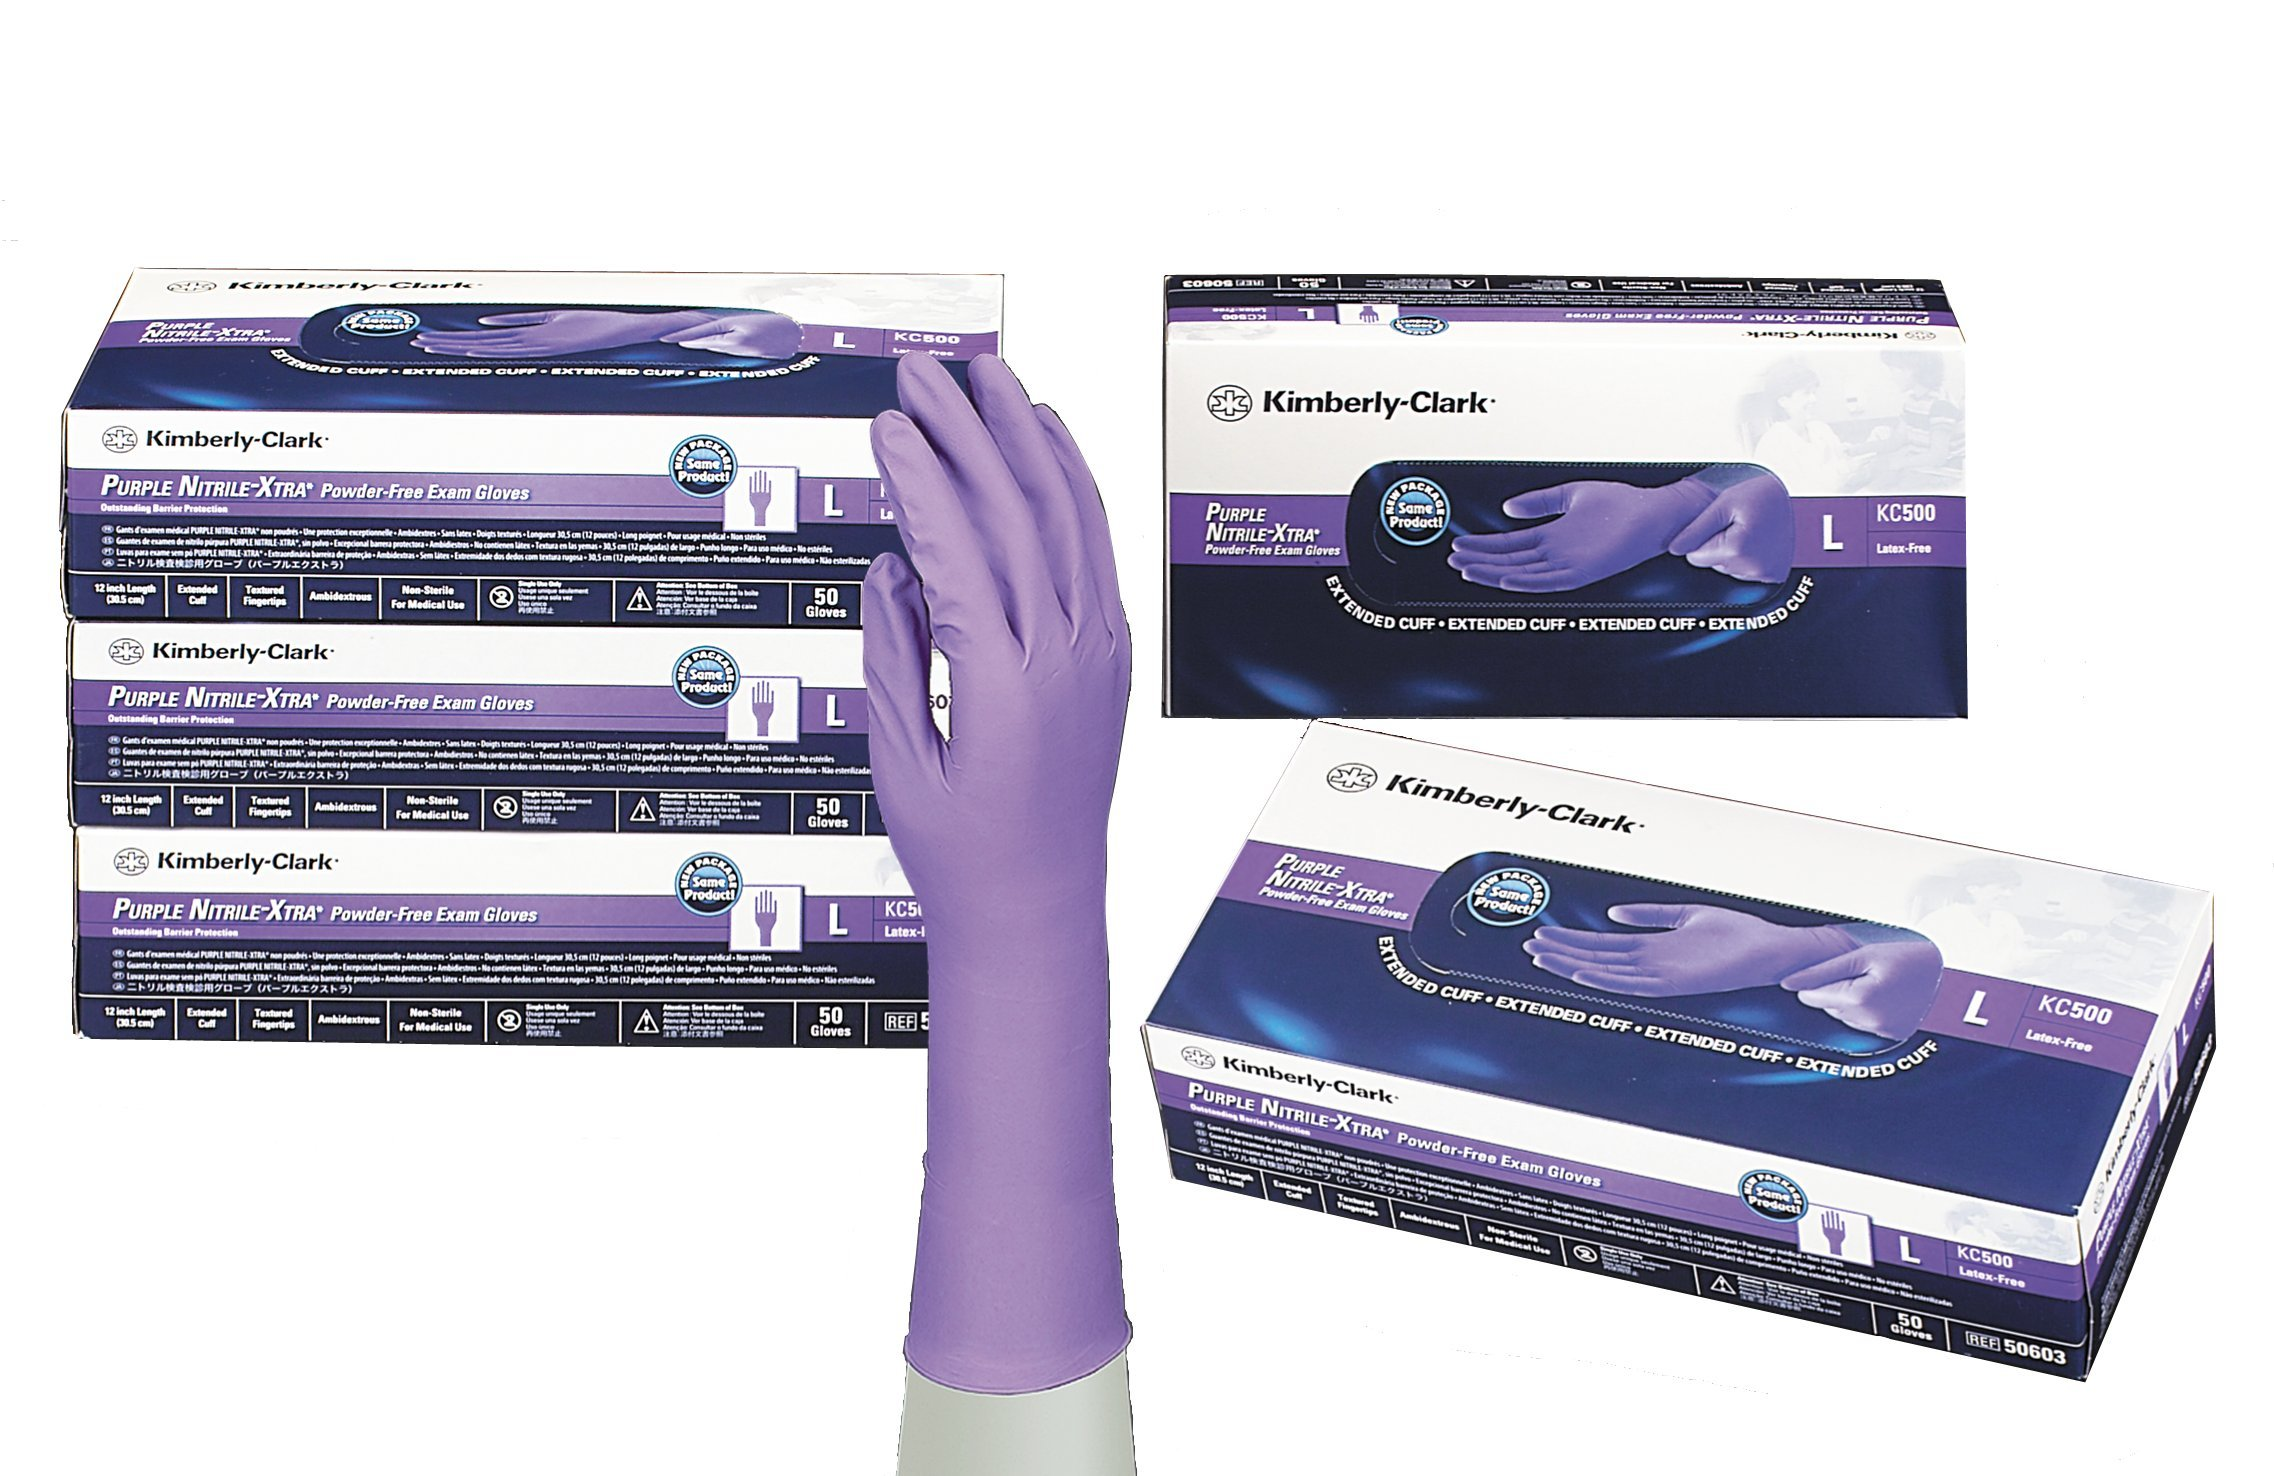 Kimberly-Clark 50601 12 In. Nitrile-Xtra Powder-Free Exam Gloves, S, 0.006'' Height, 3.15'' Wide, 12.2'' Length, Nitrile, Purple (Pack of 50)